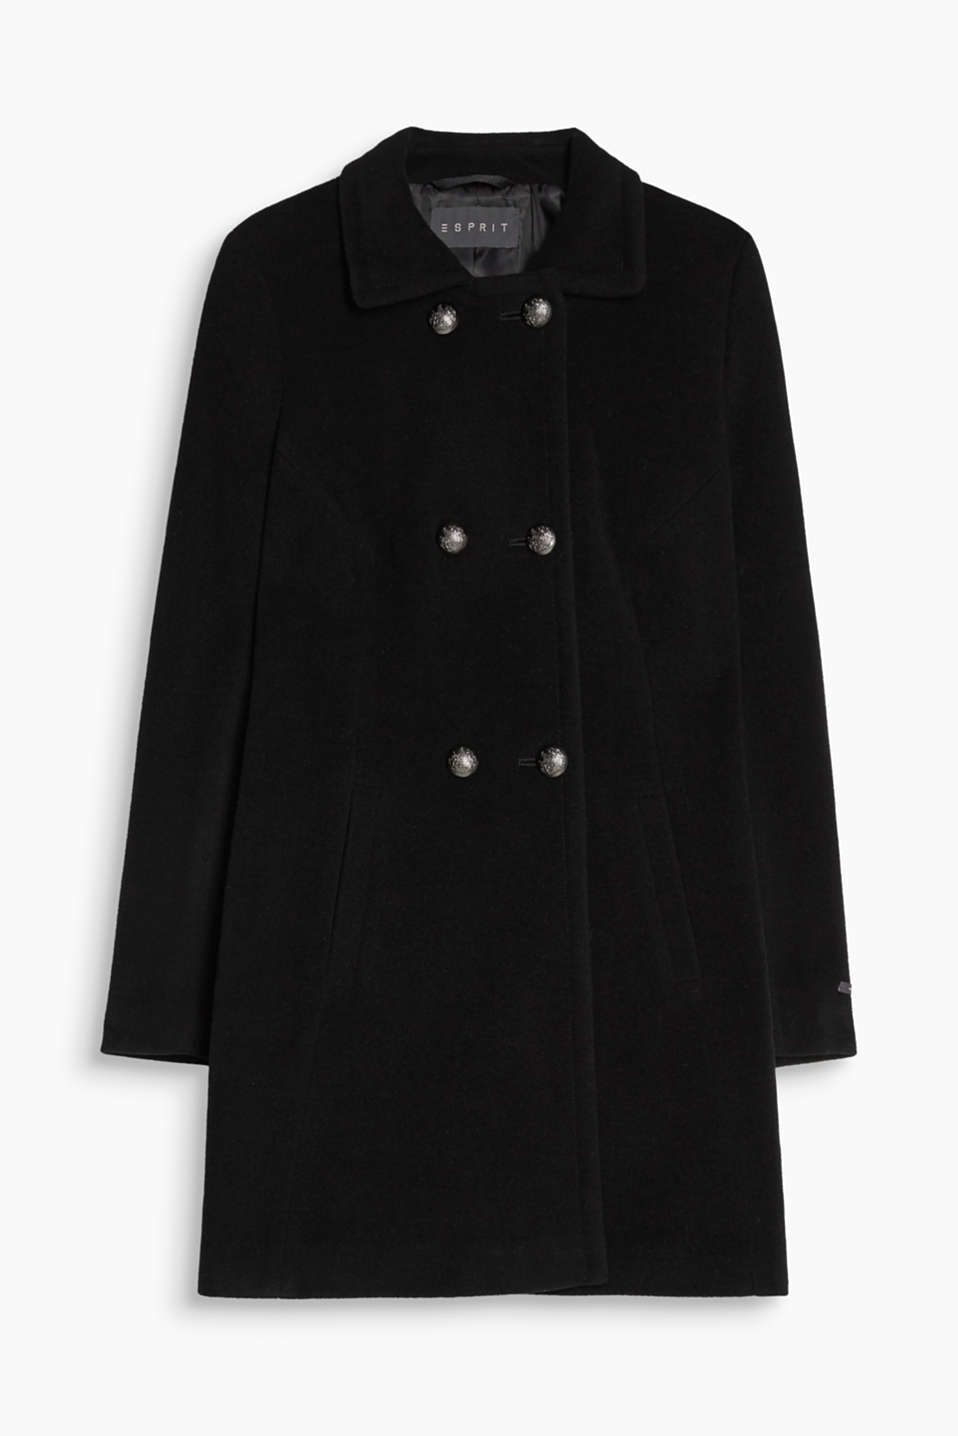 Military-look with a luxurious twist: coat with decorative crested buttons and exquisite cashmere